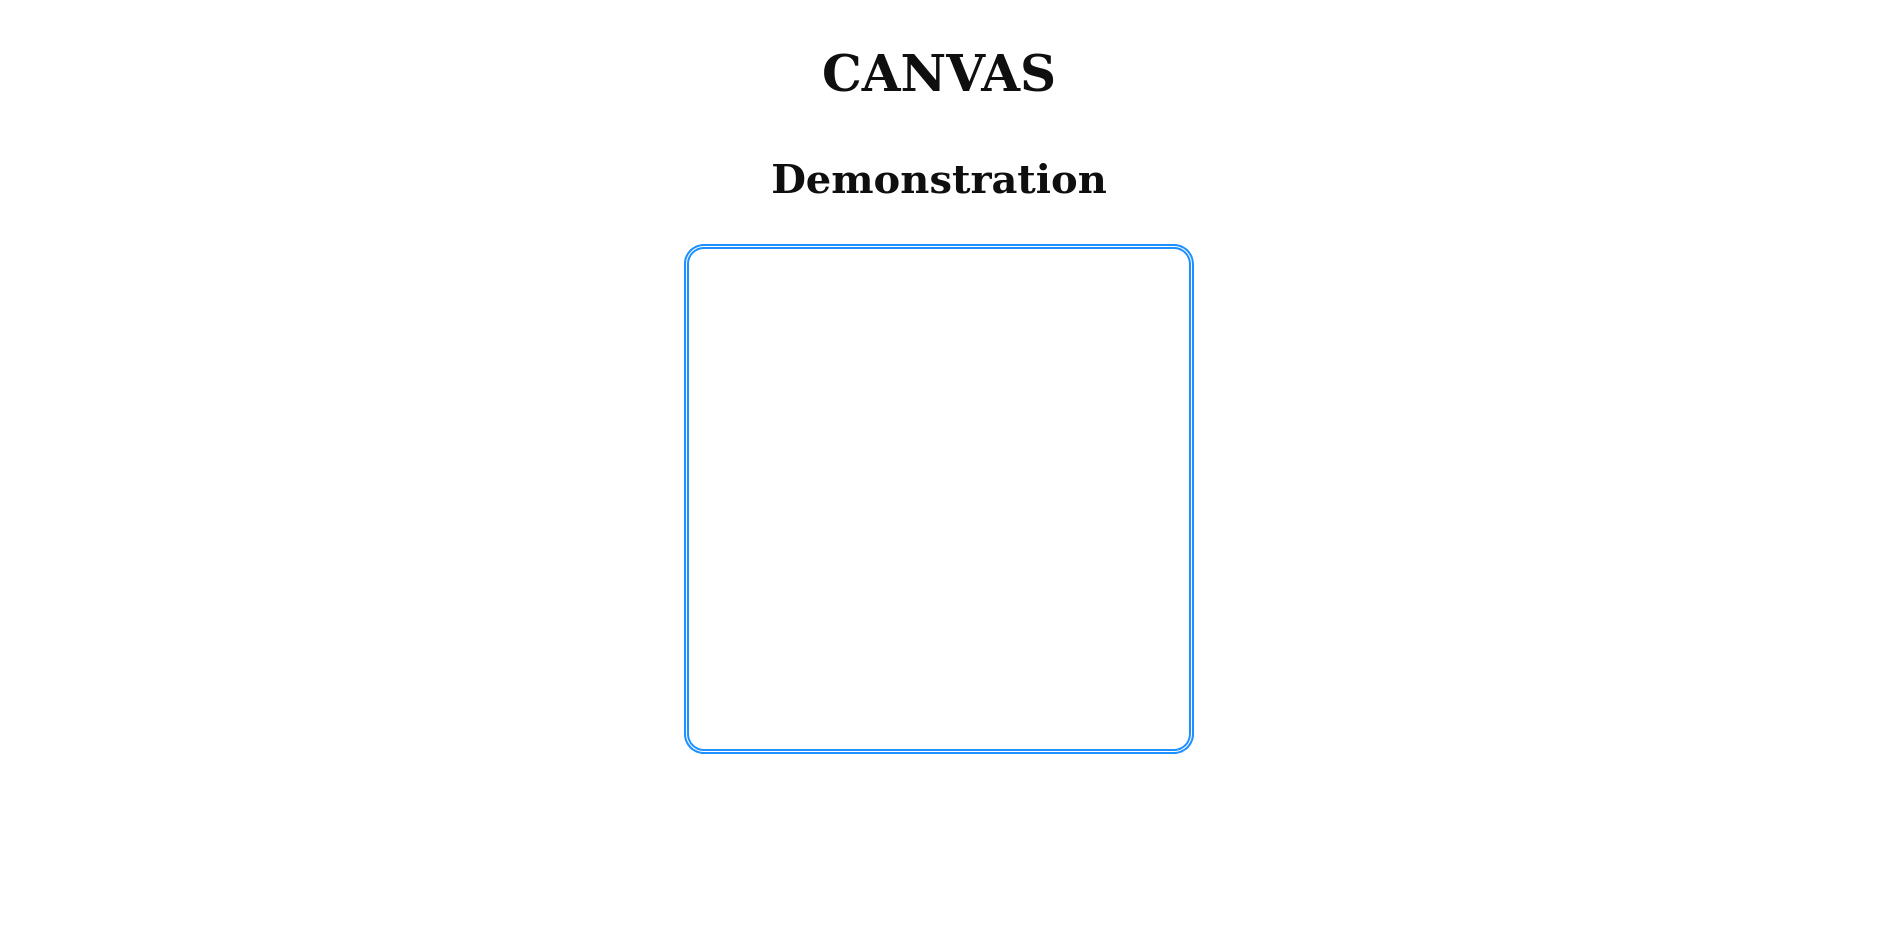 The Canvas example